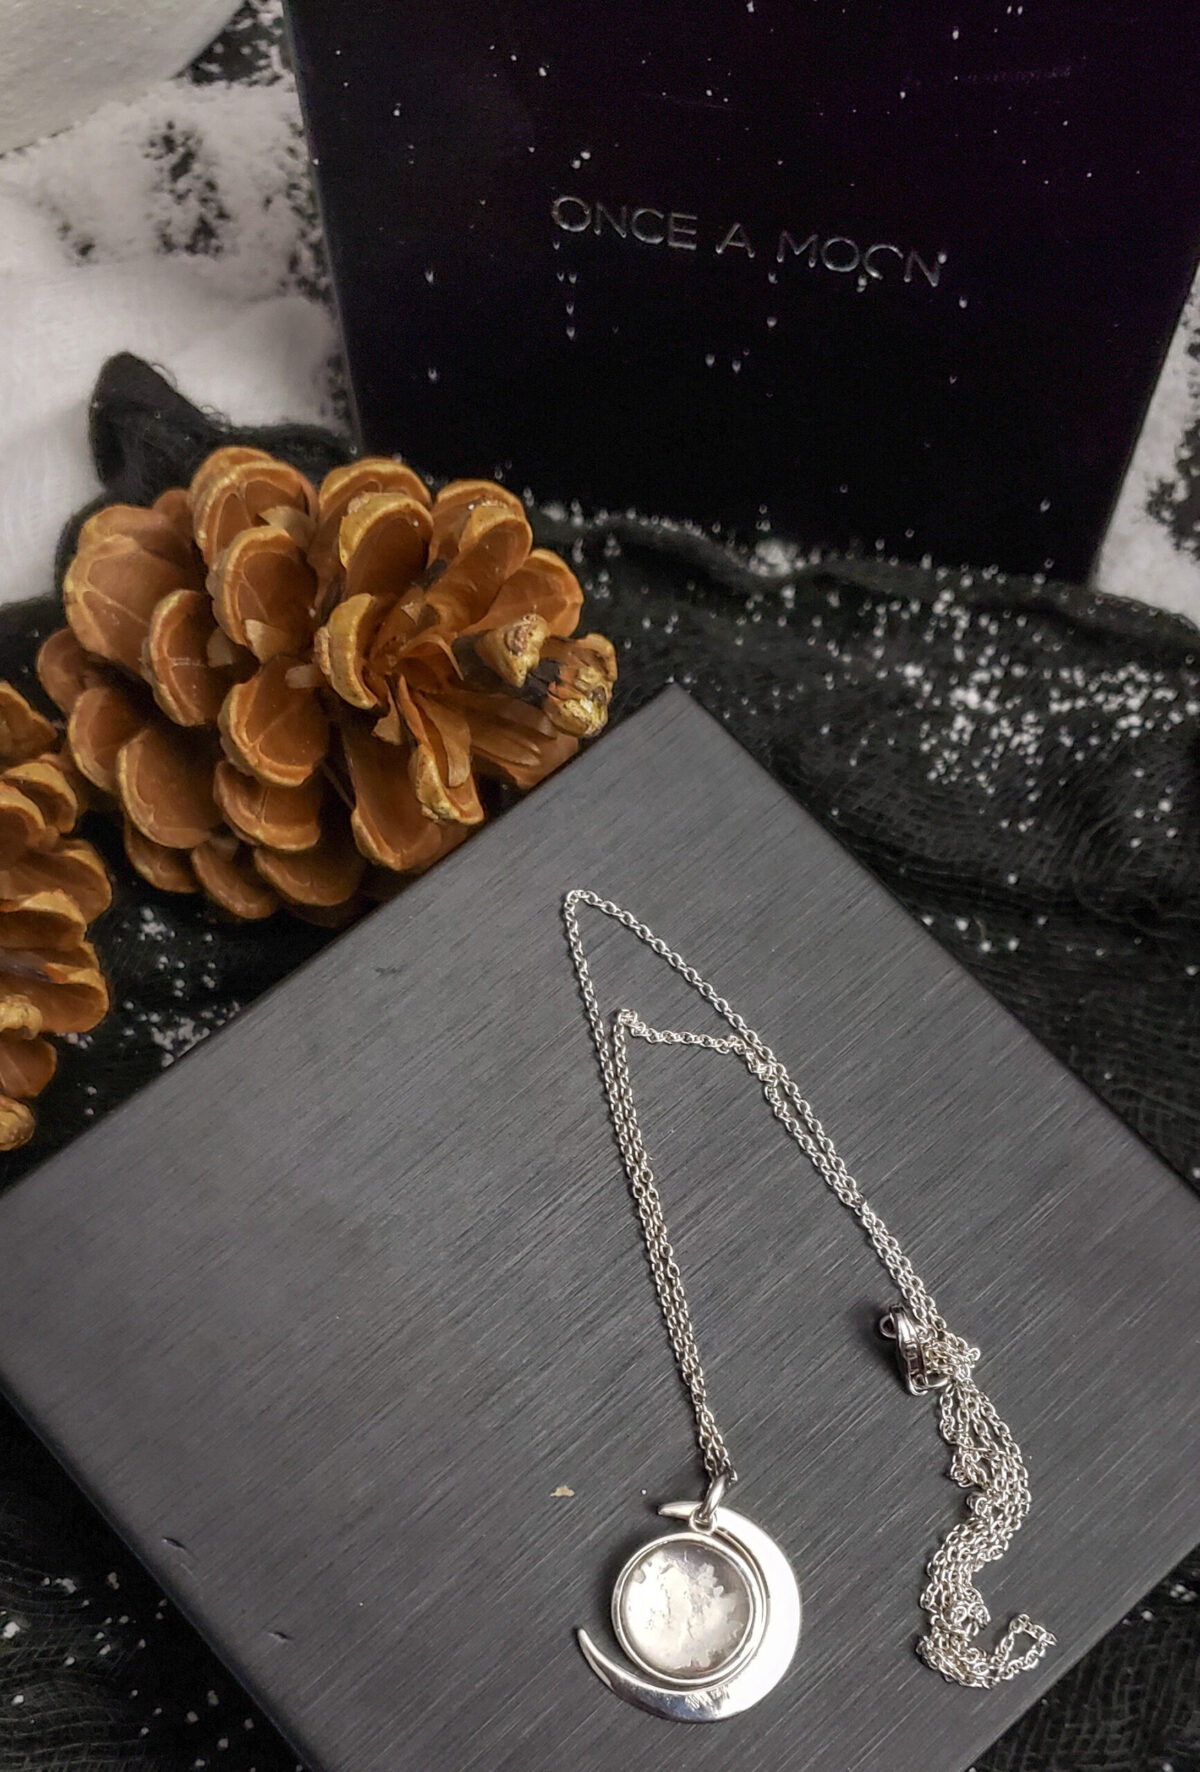 sterling silver once a moon necklace